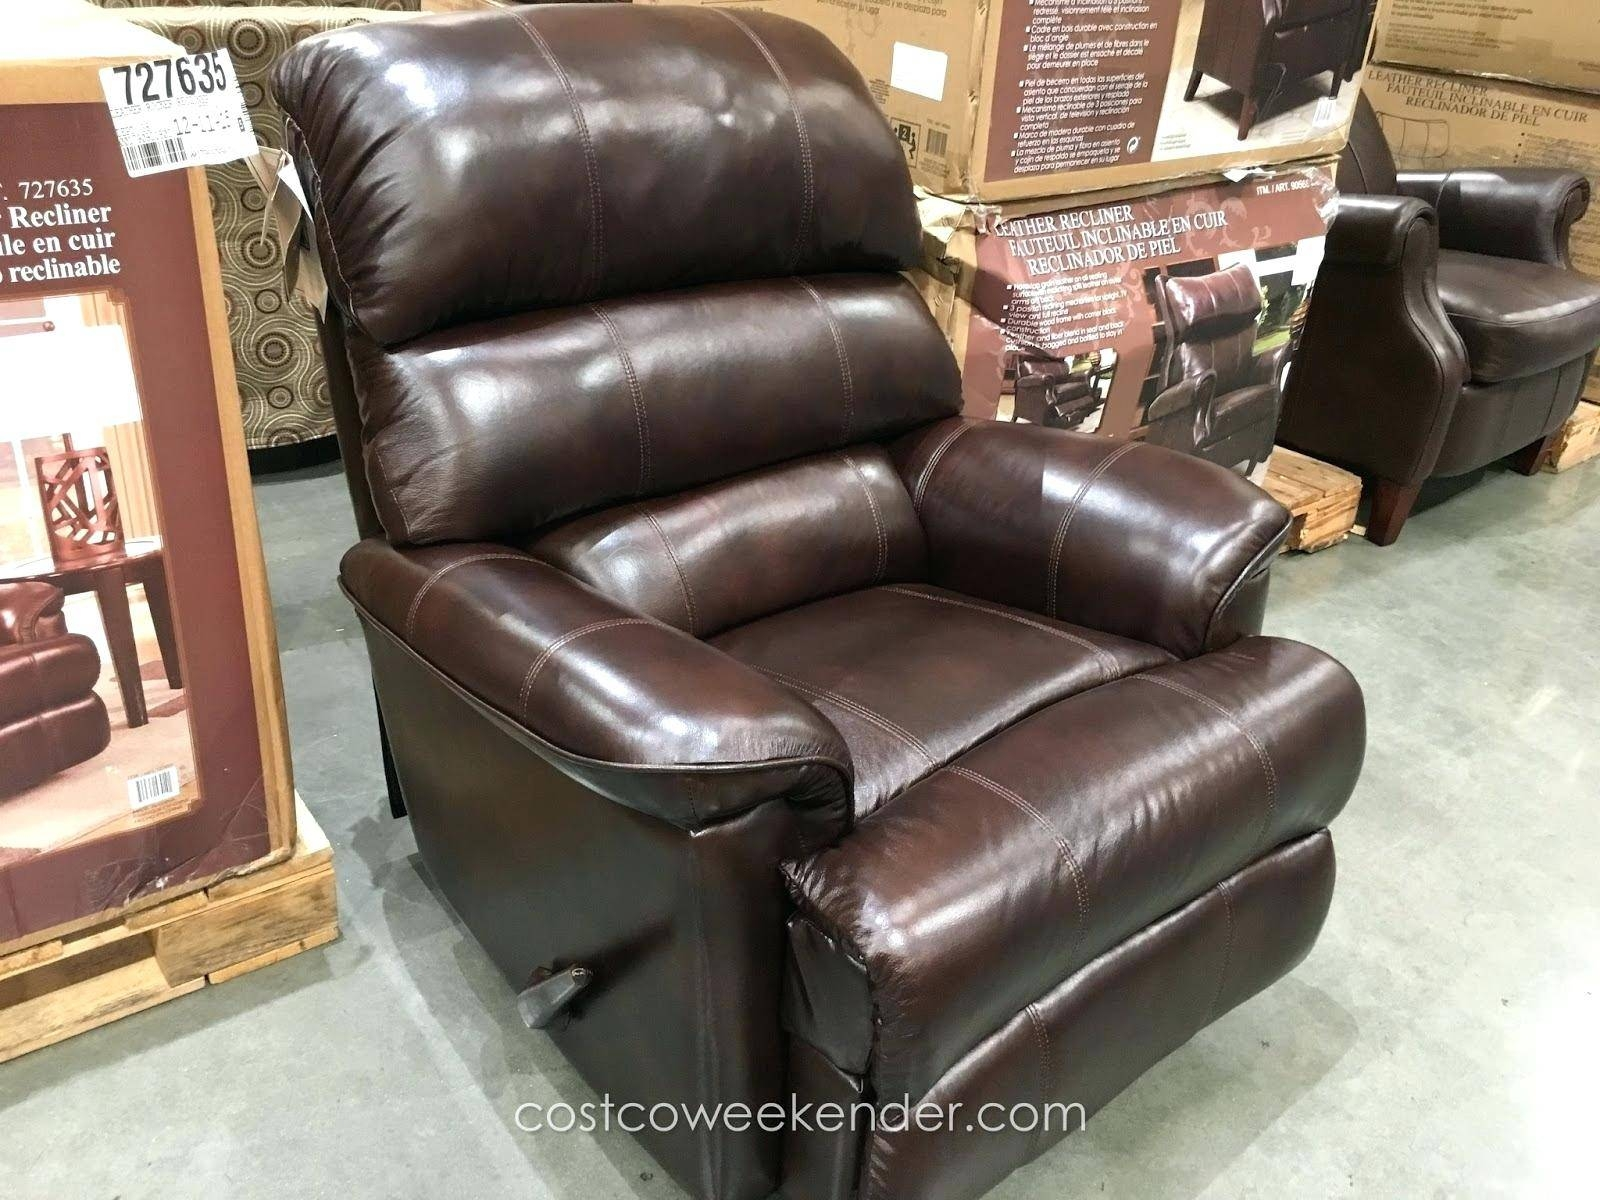 Recliners: Mesmerizing Berkline Leather Recliner For Home with regard to Berkline Leather Sofas (Image 12 of 15)